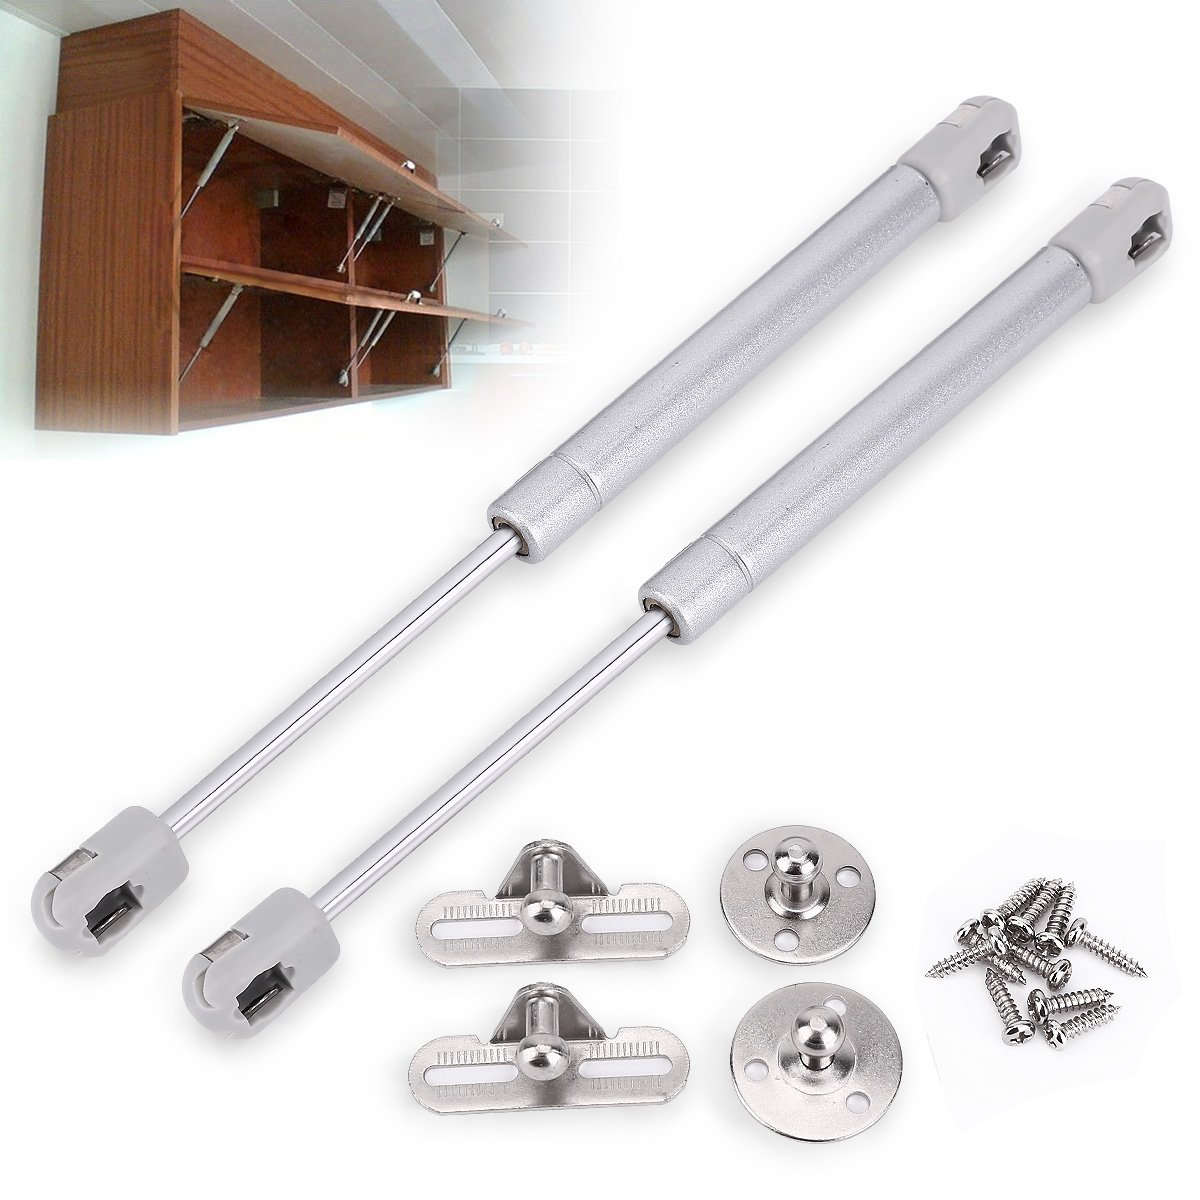 2x Gas Strut Lift Pneumatic Support Gas Spring Stay Kitchen Cabinet ...